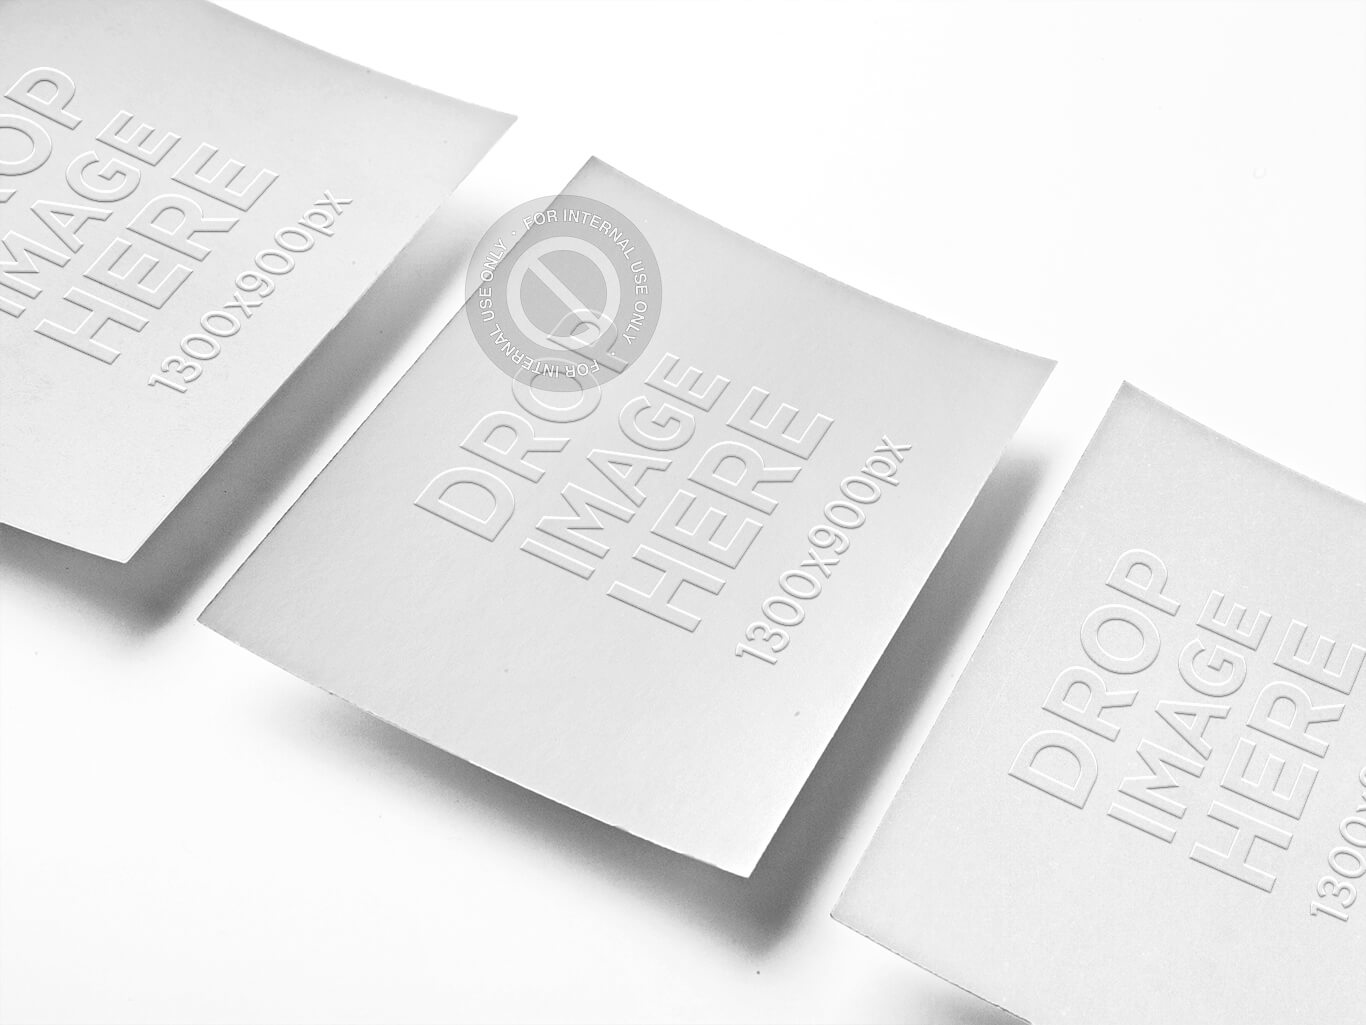 ELEGANT BUSINESS CARD MOCKUP WITH SHADOW